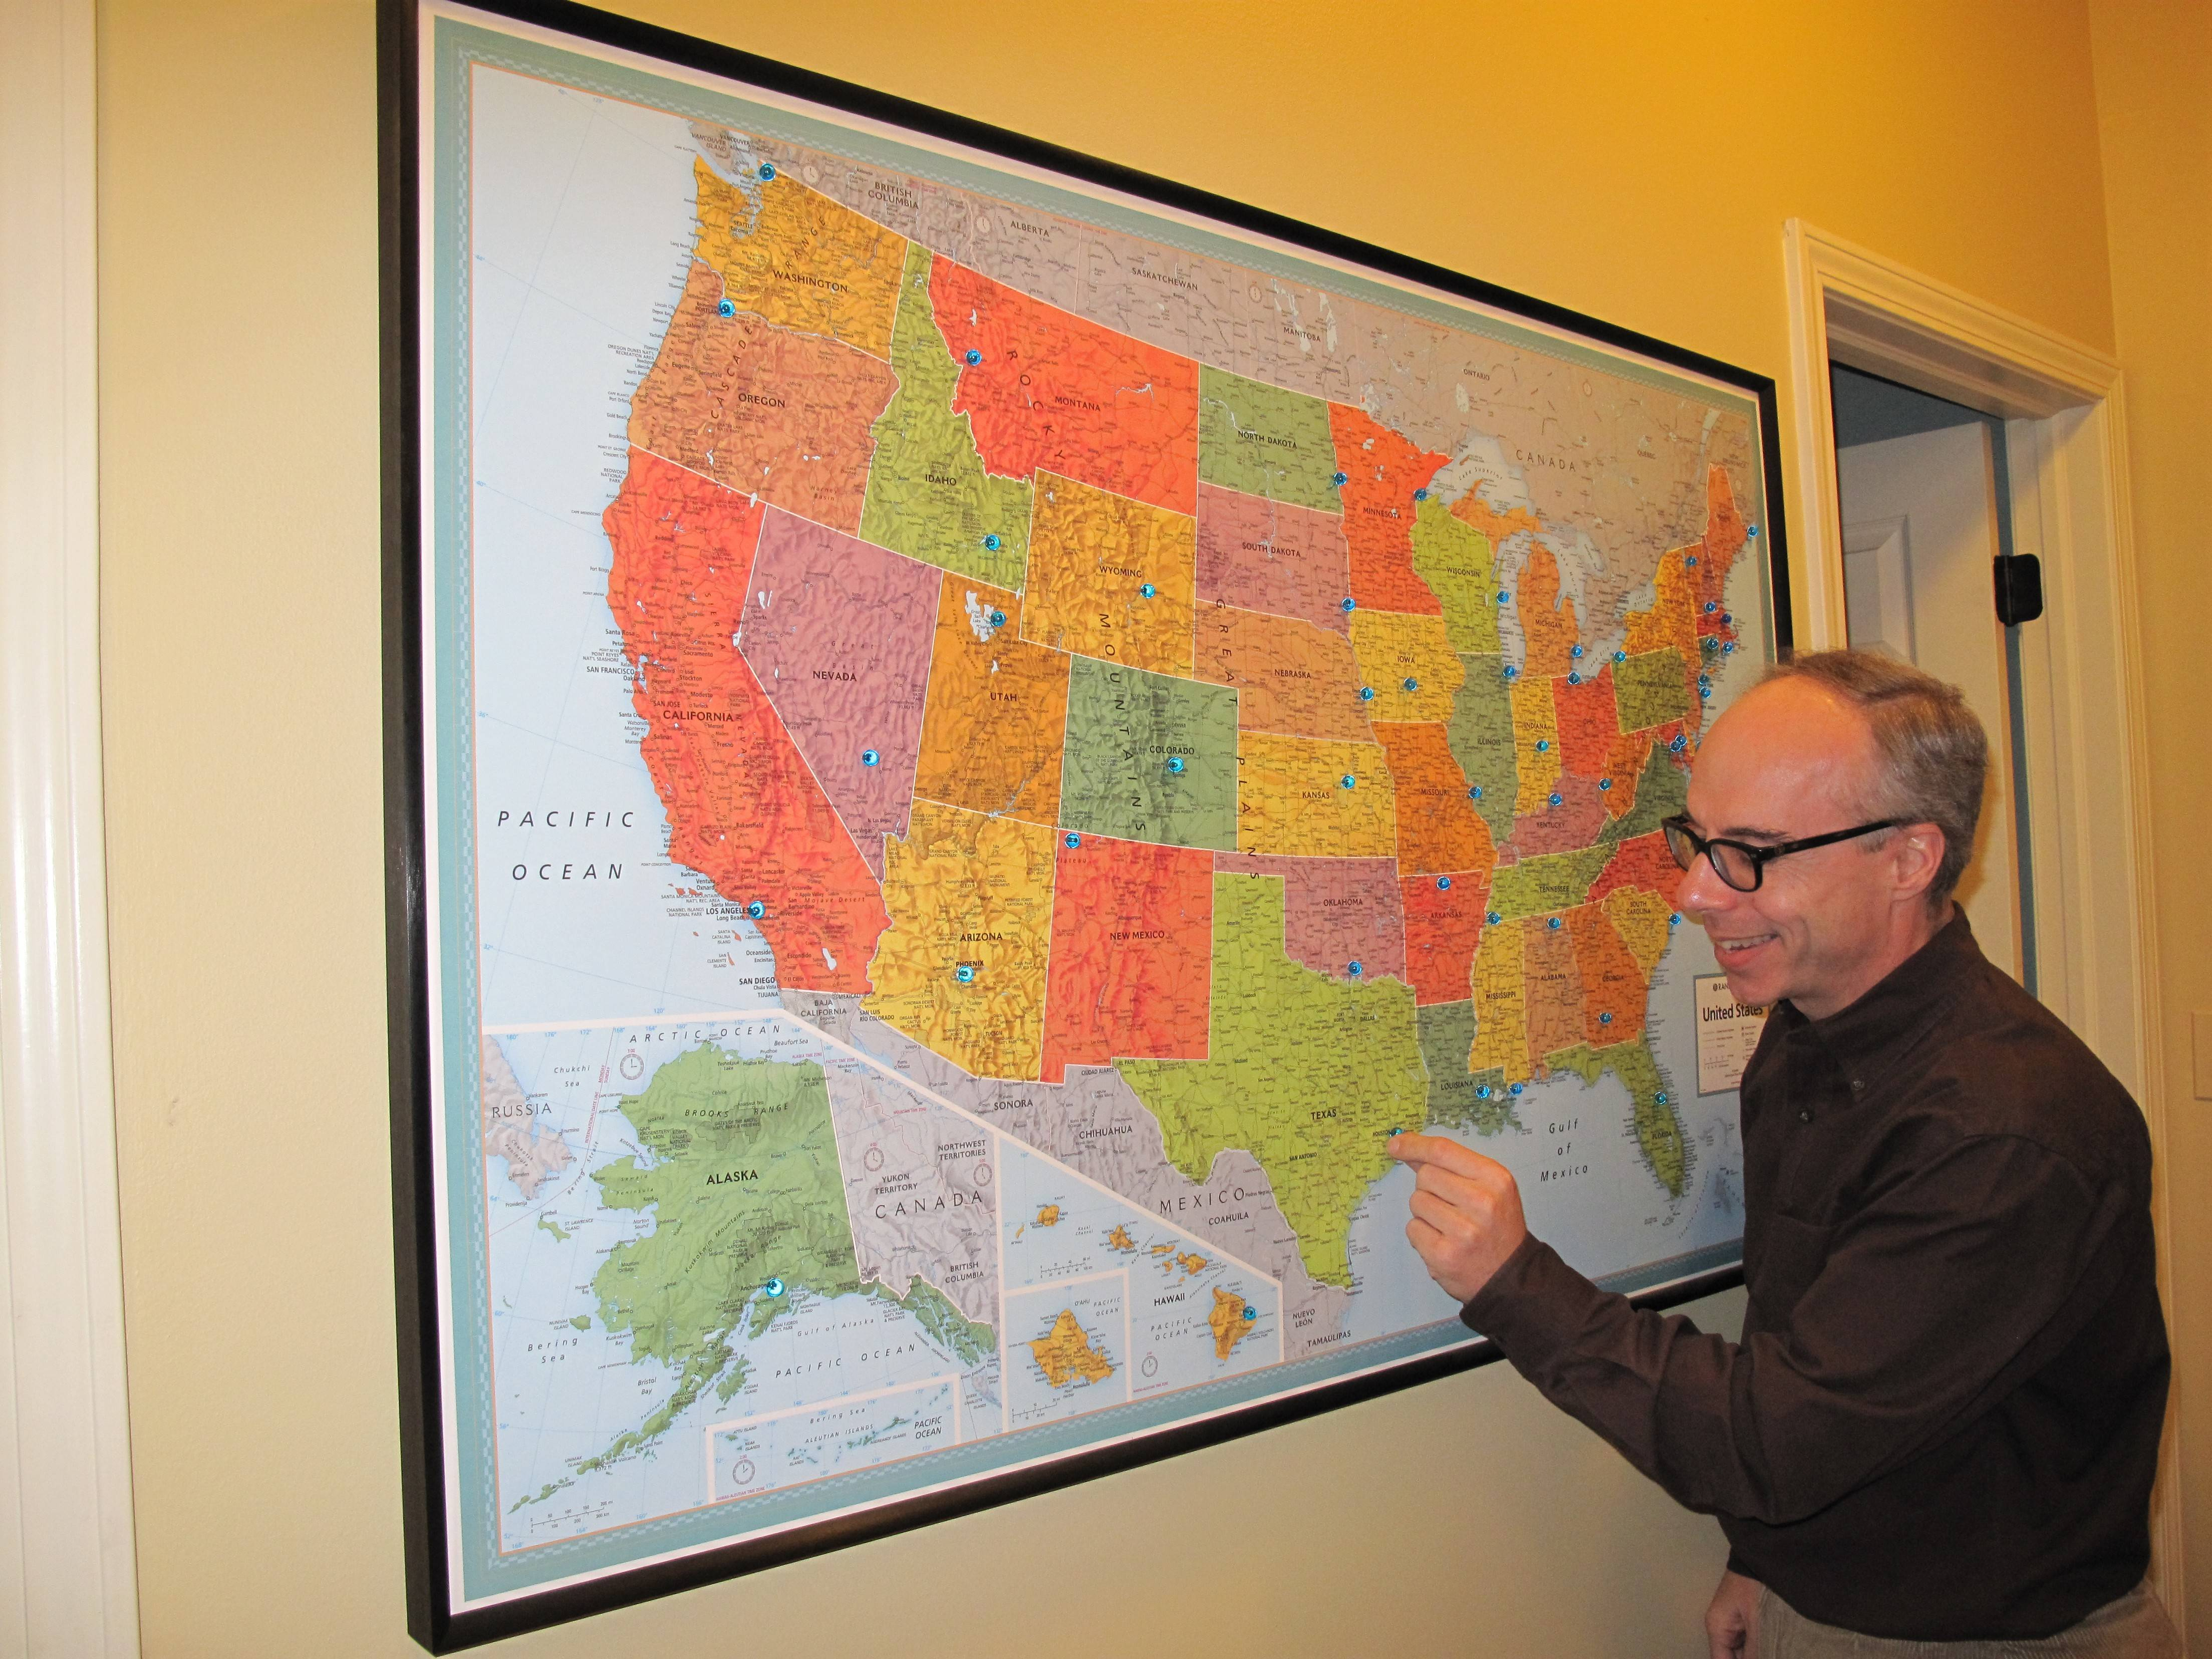 Tom Minichiello of Naperville places a push pin atop Houston, on the map he has used to trace his journey to complete a marathon in less than four hours in all 50 states. He reached his goal Jan. 19 in Houston.